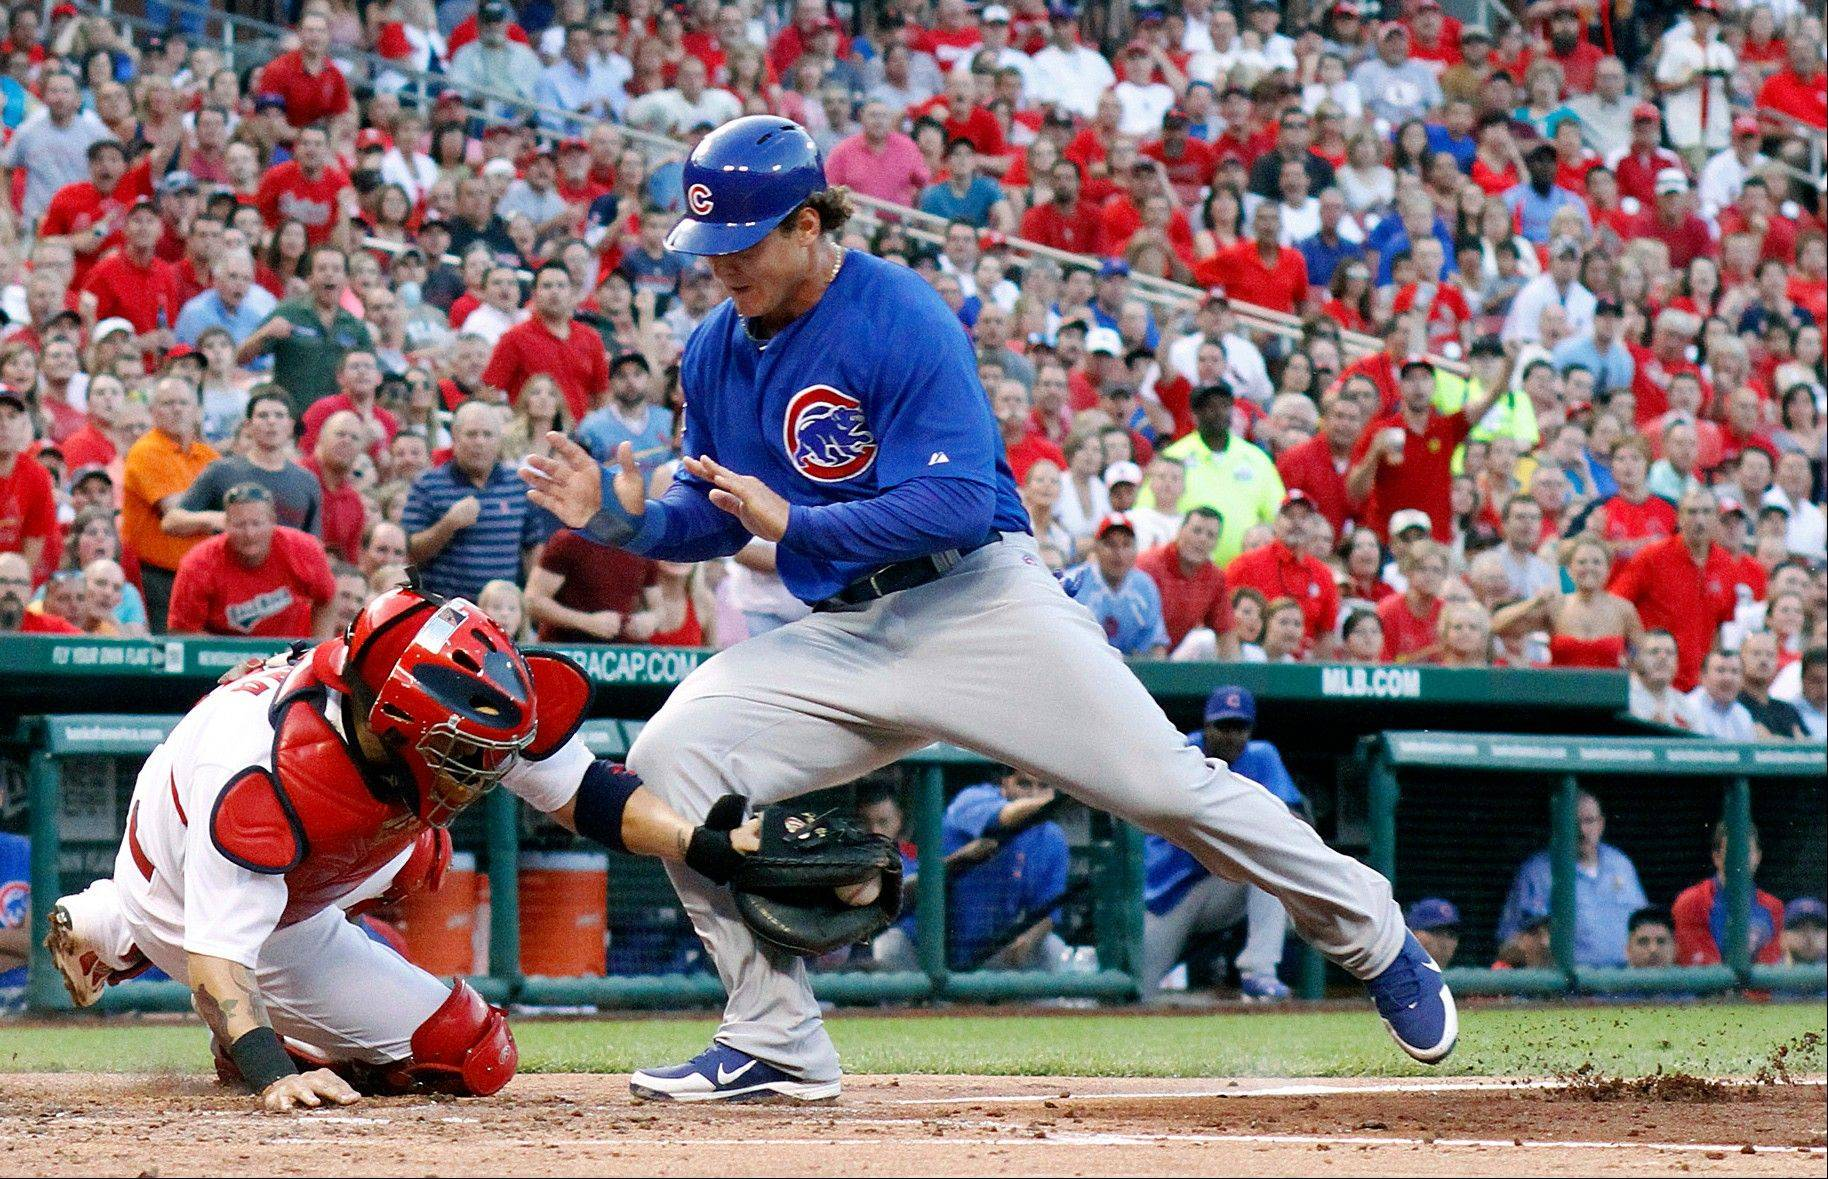 The Cubs� Anthony Rizzo is tagged by Cardinals catcher Yadier Molina � but he manages to knock the ball loose and score during Wednesday�s game at Busch Stadium in St. Louis.